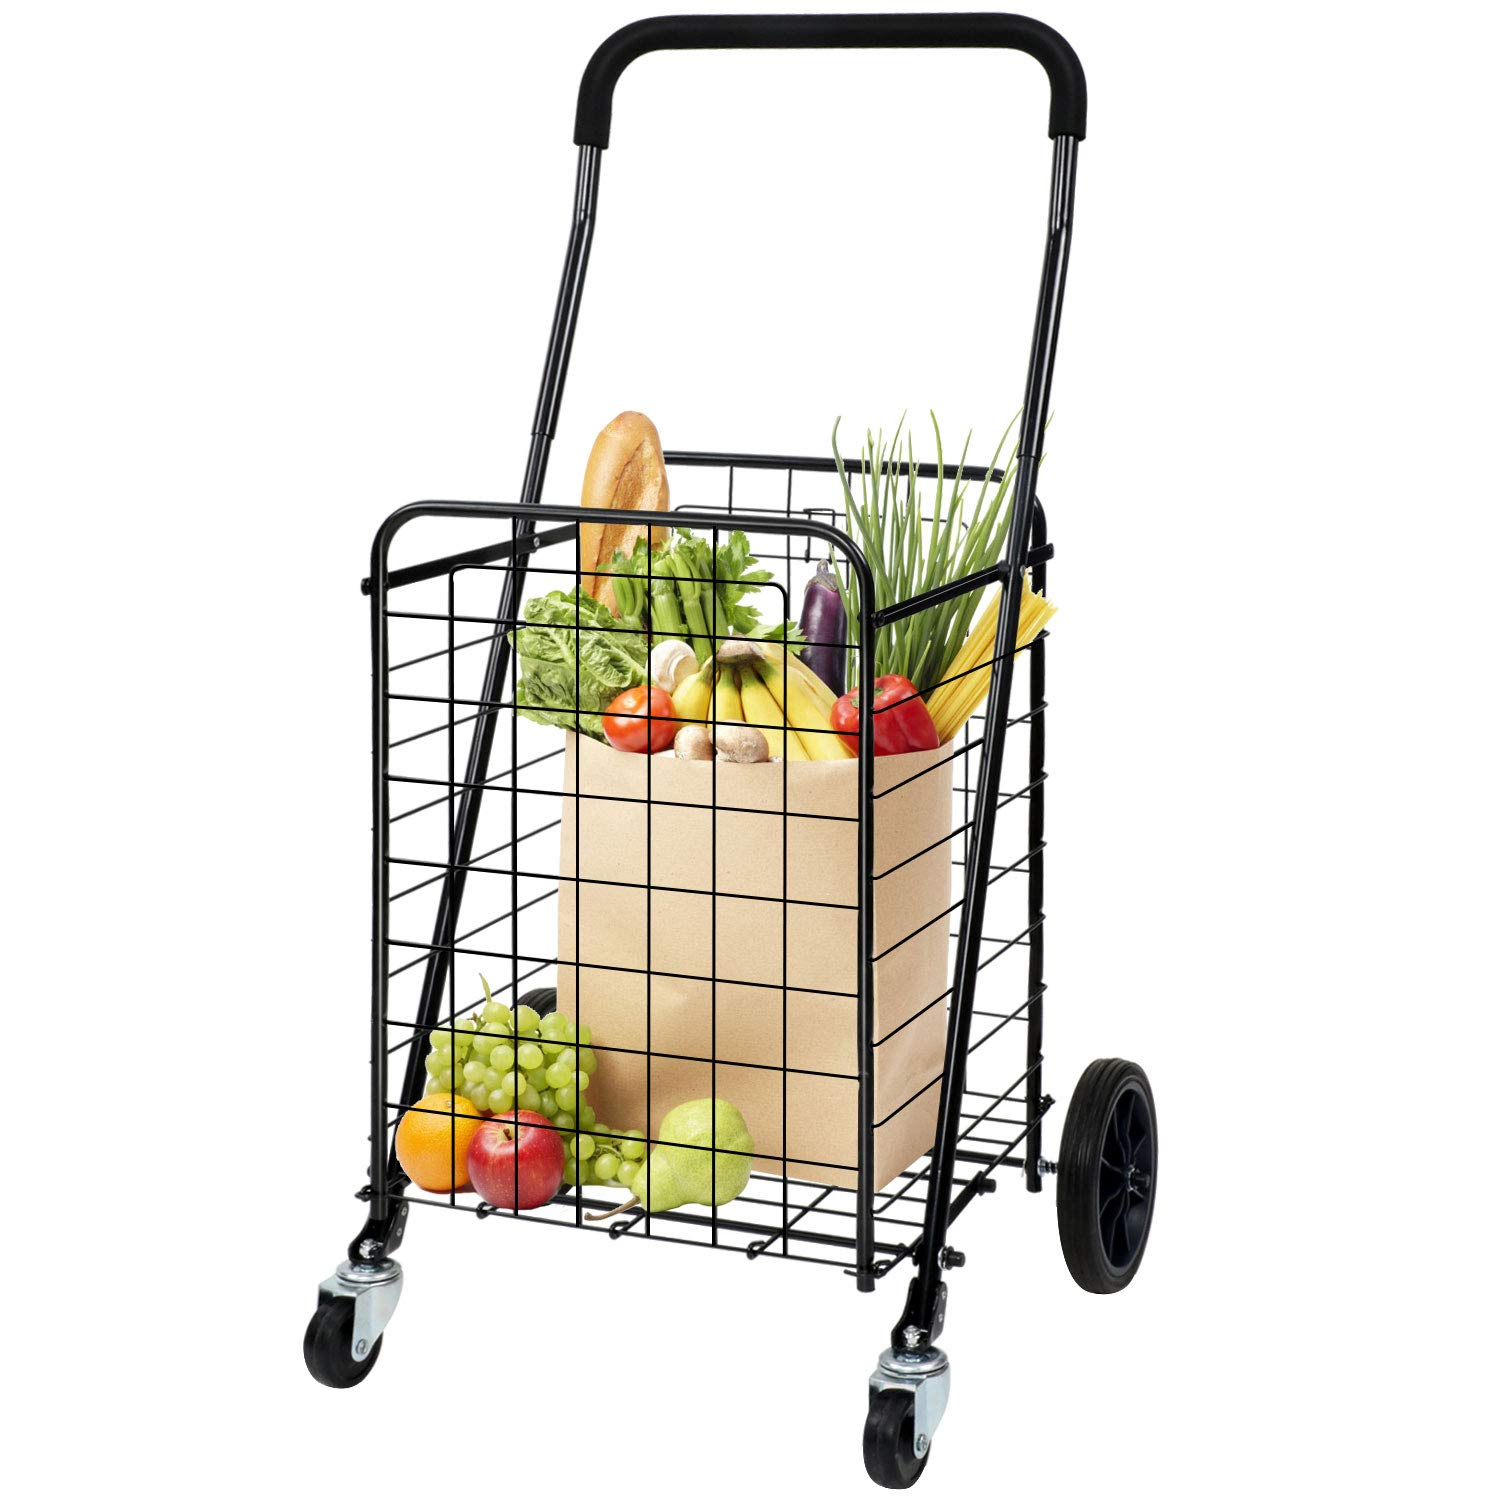 Pipishell Shopping Cart with Dual Swivel Wheels for Groceries - Compact Portable Folding Cart Saves Space - with Adjustable Handle Height - Easy to Move Lightweight Trolley Holds up to 70L/Max 66Ibs by Pipishell